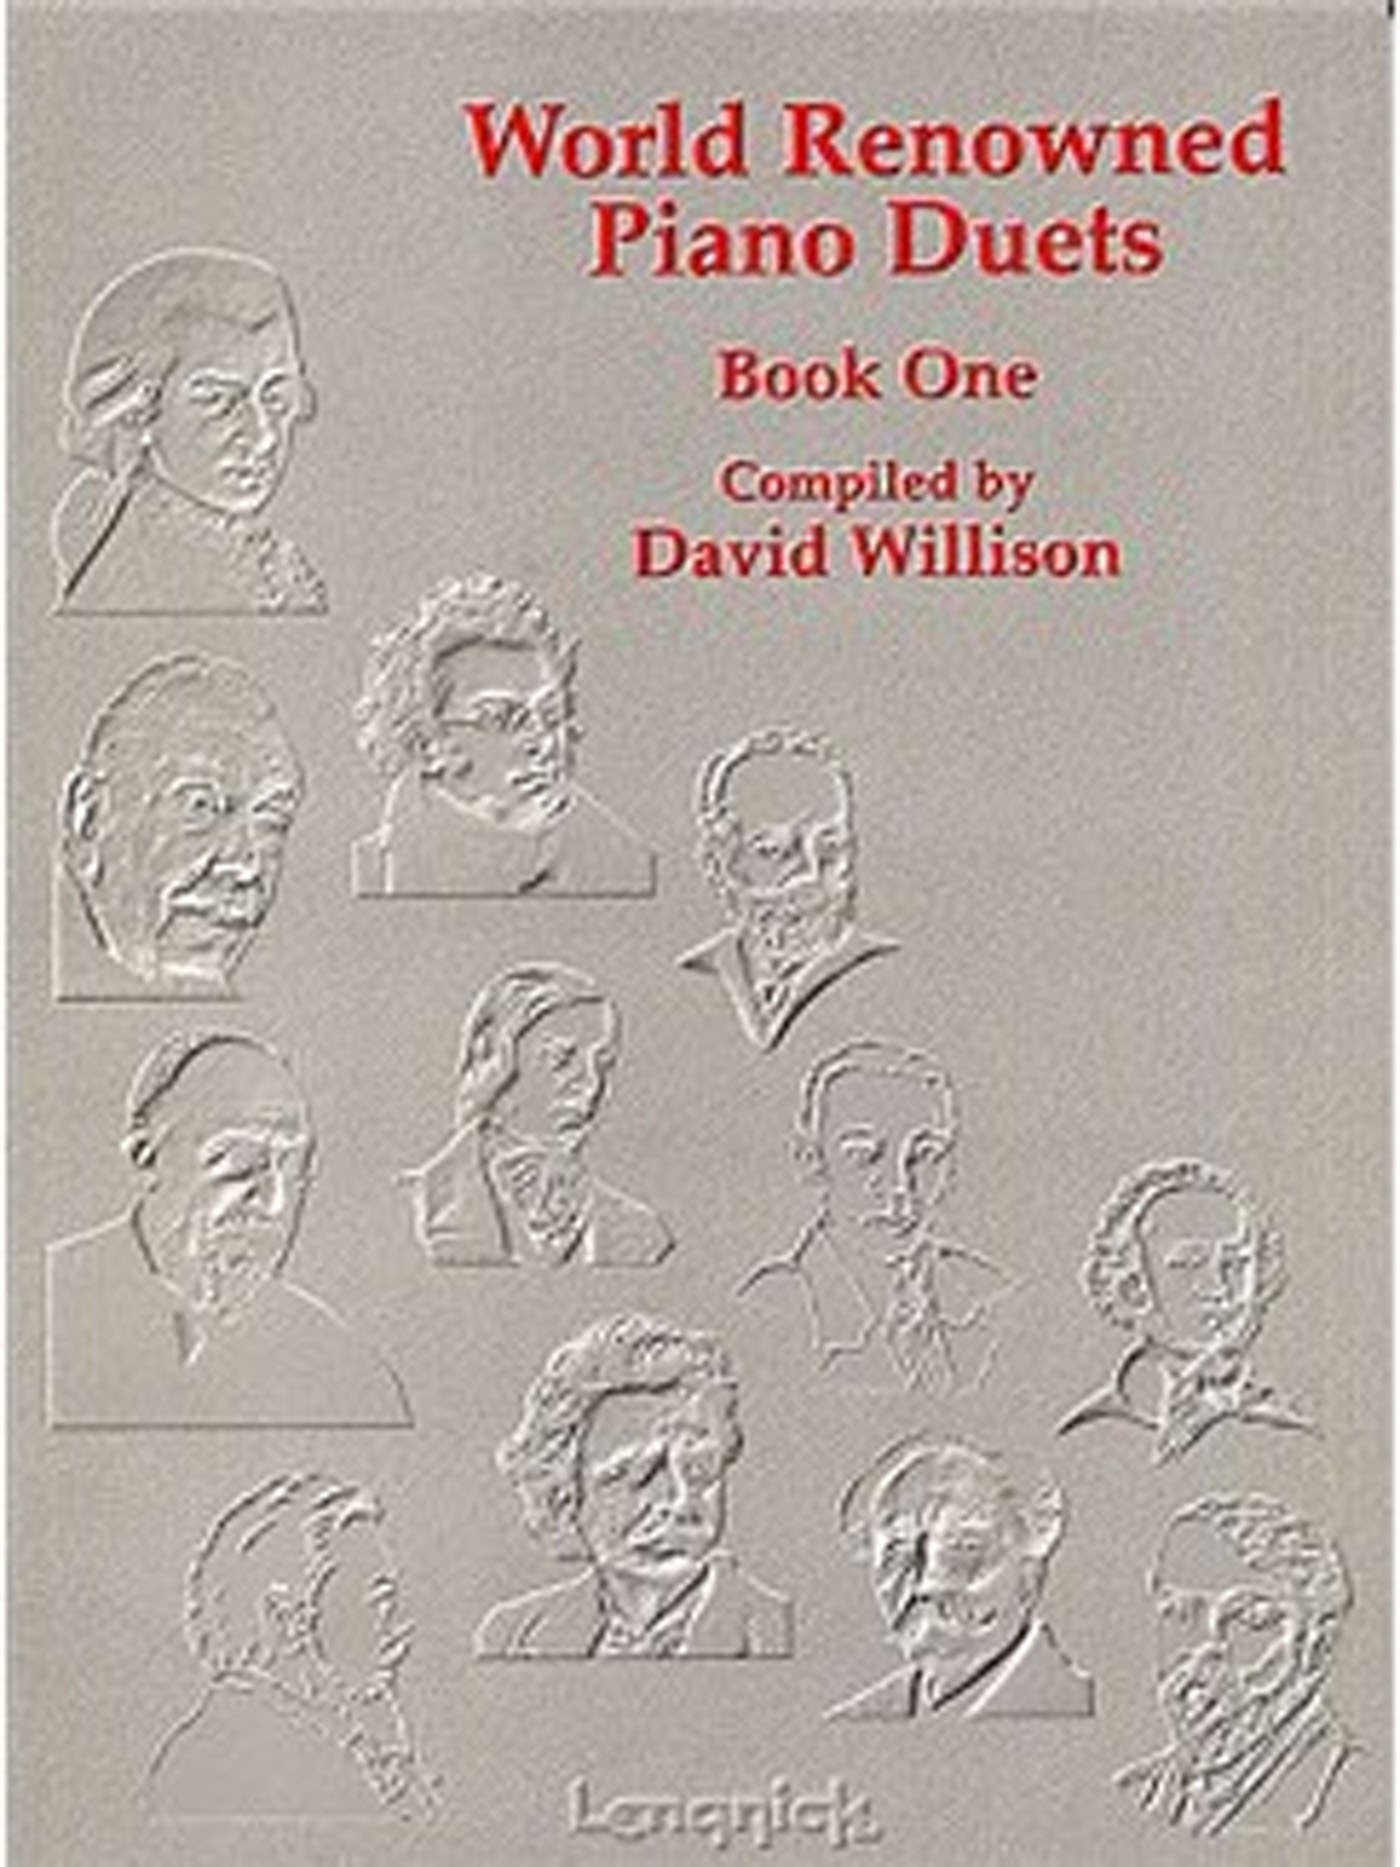 World Renowned Piano Duets Book One Four Centuries 80 + Urtext Classics S145